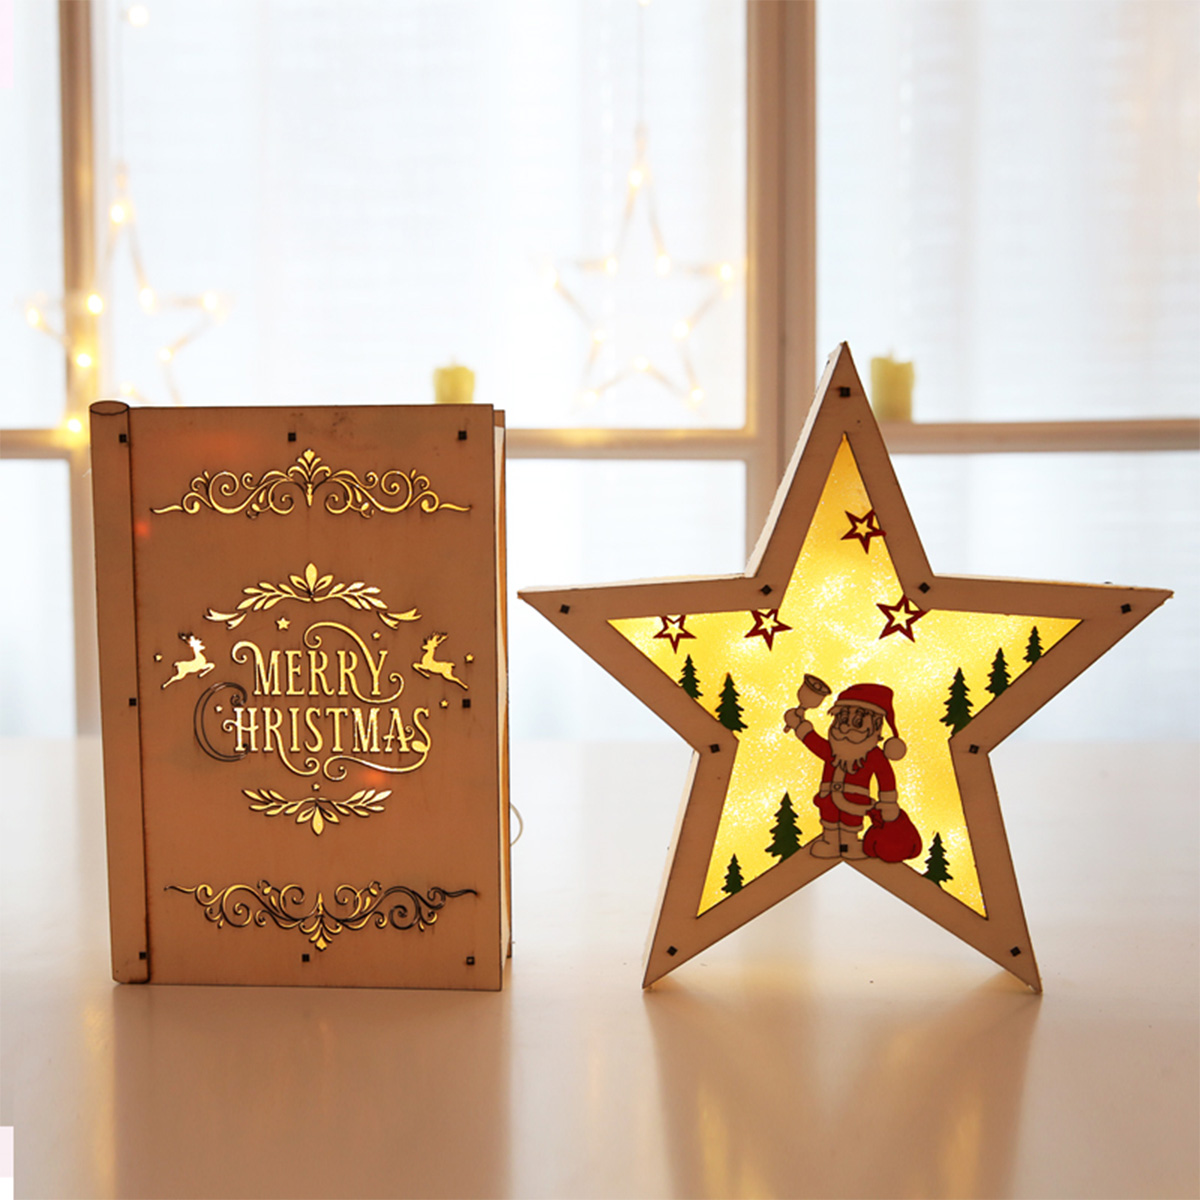 LED Light Christmas Decorations Houten bureau-ornamenten